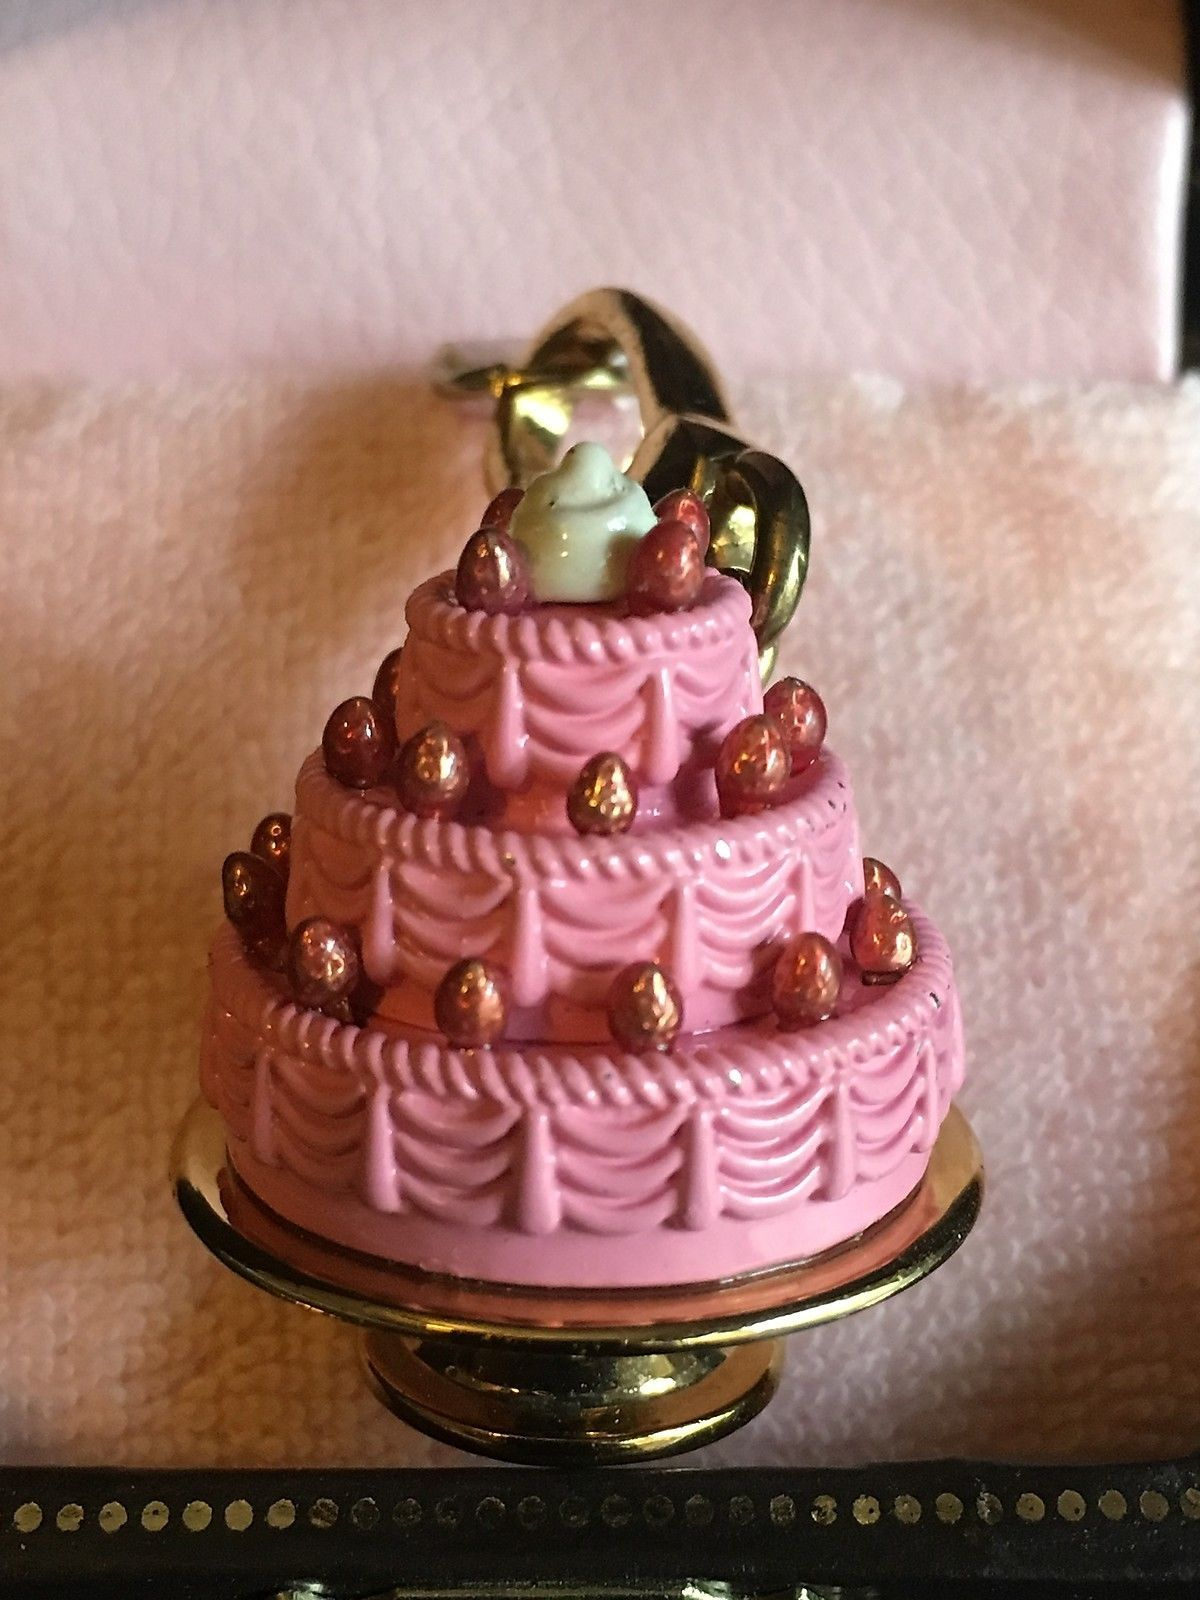 New Juicy Couture PINK 3 TIERED Layer CAKE w/ berries Gold Charm